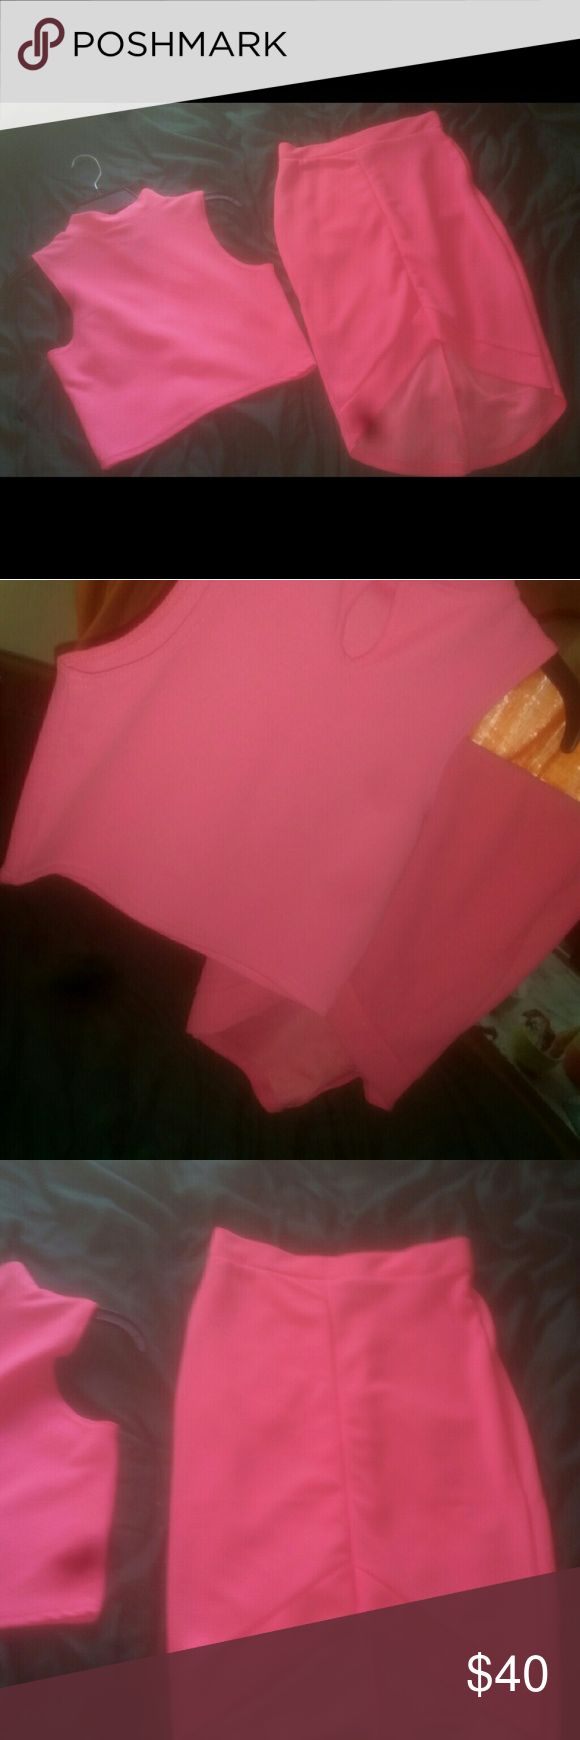 💕 PINK Top & Skirt Set 💕💕 Medium 💙  Hot pink skirt w/ matching top slit in the front Never worn! Dresses Mini